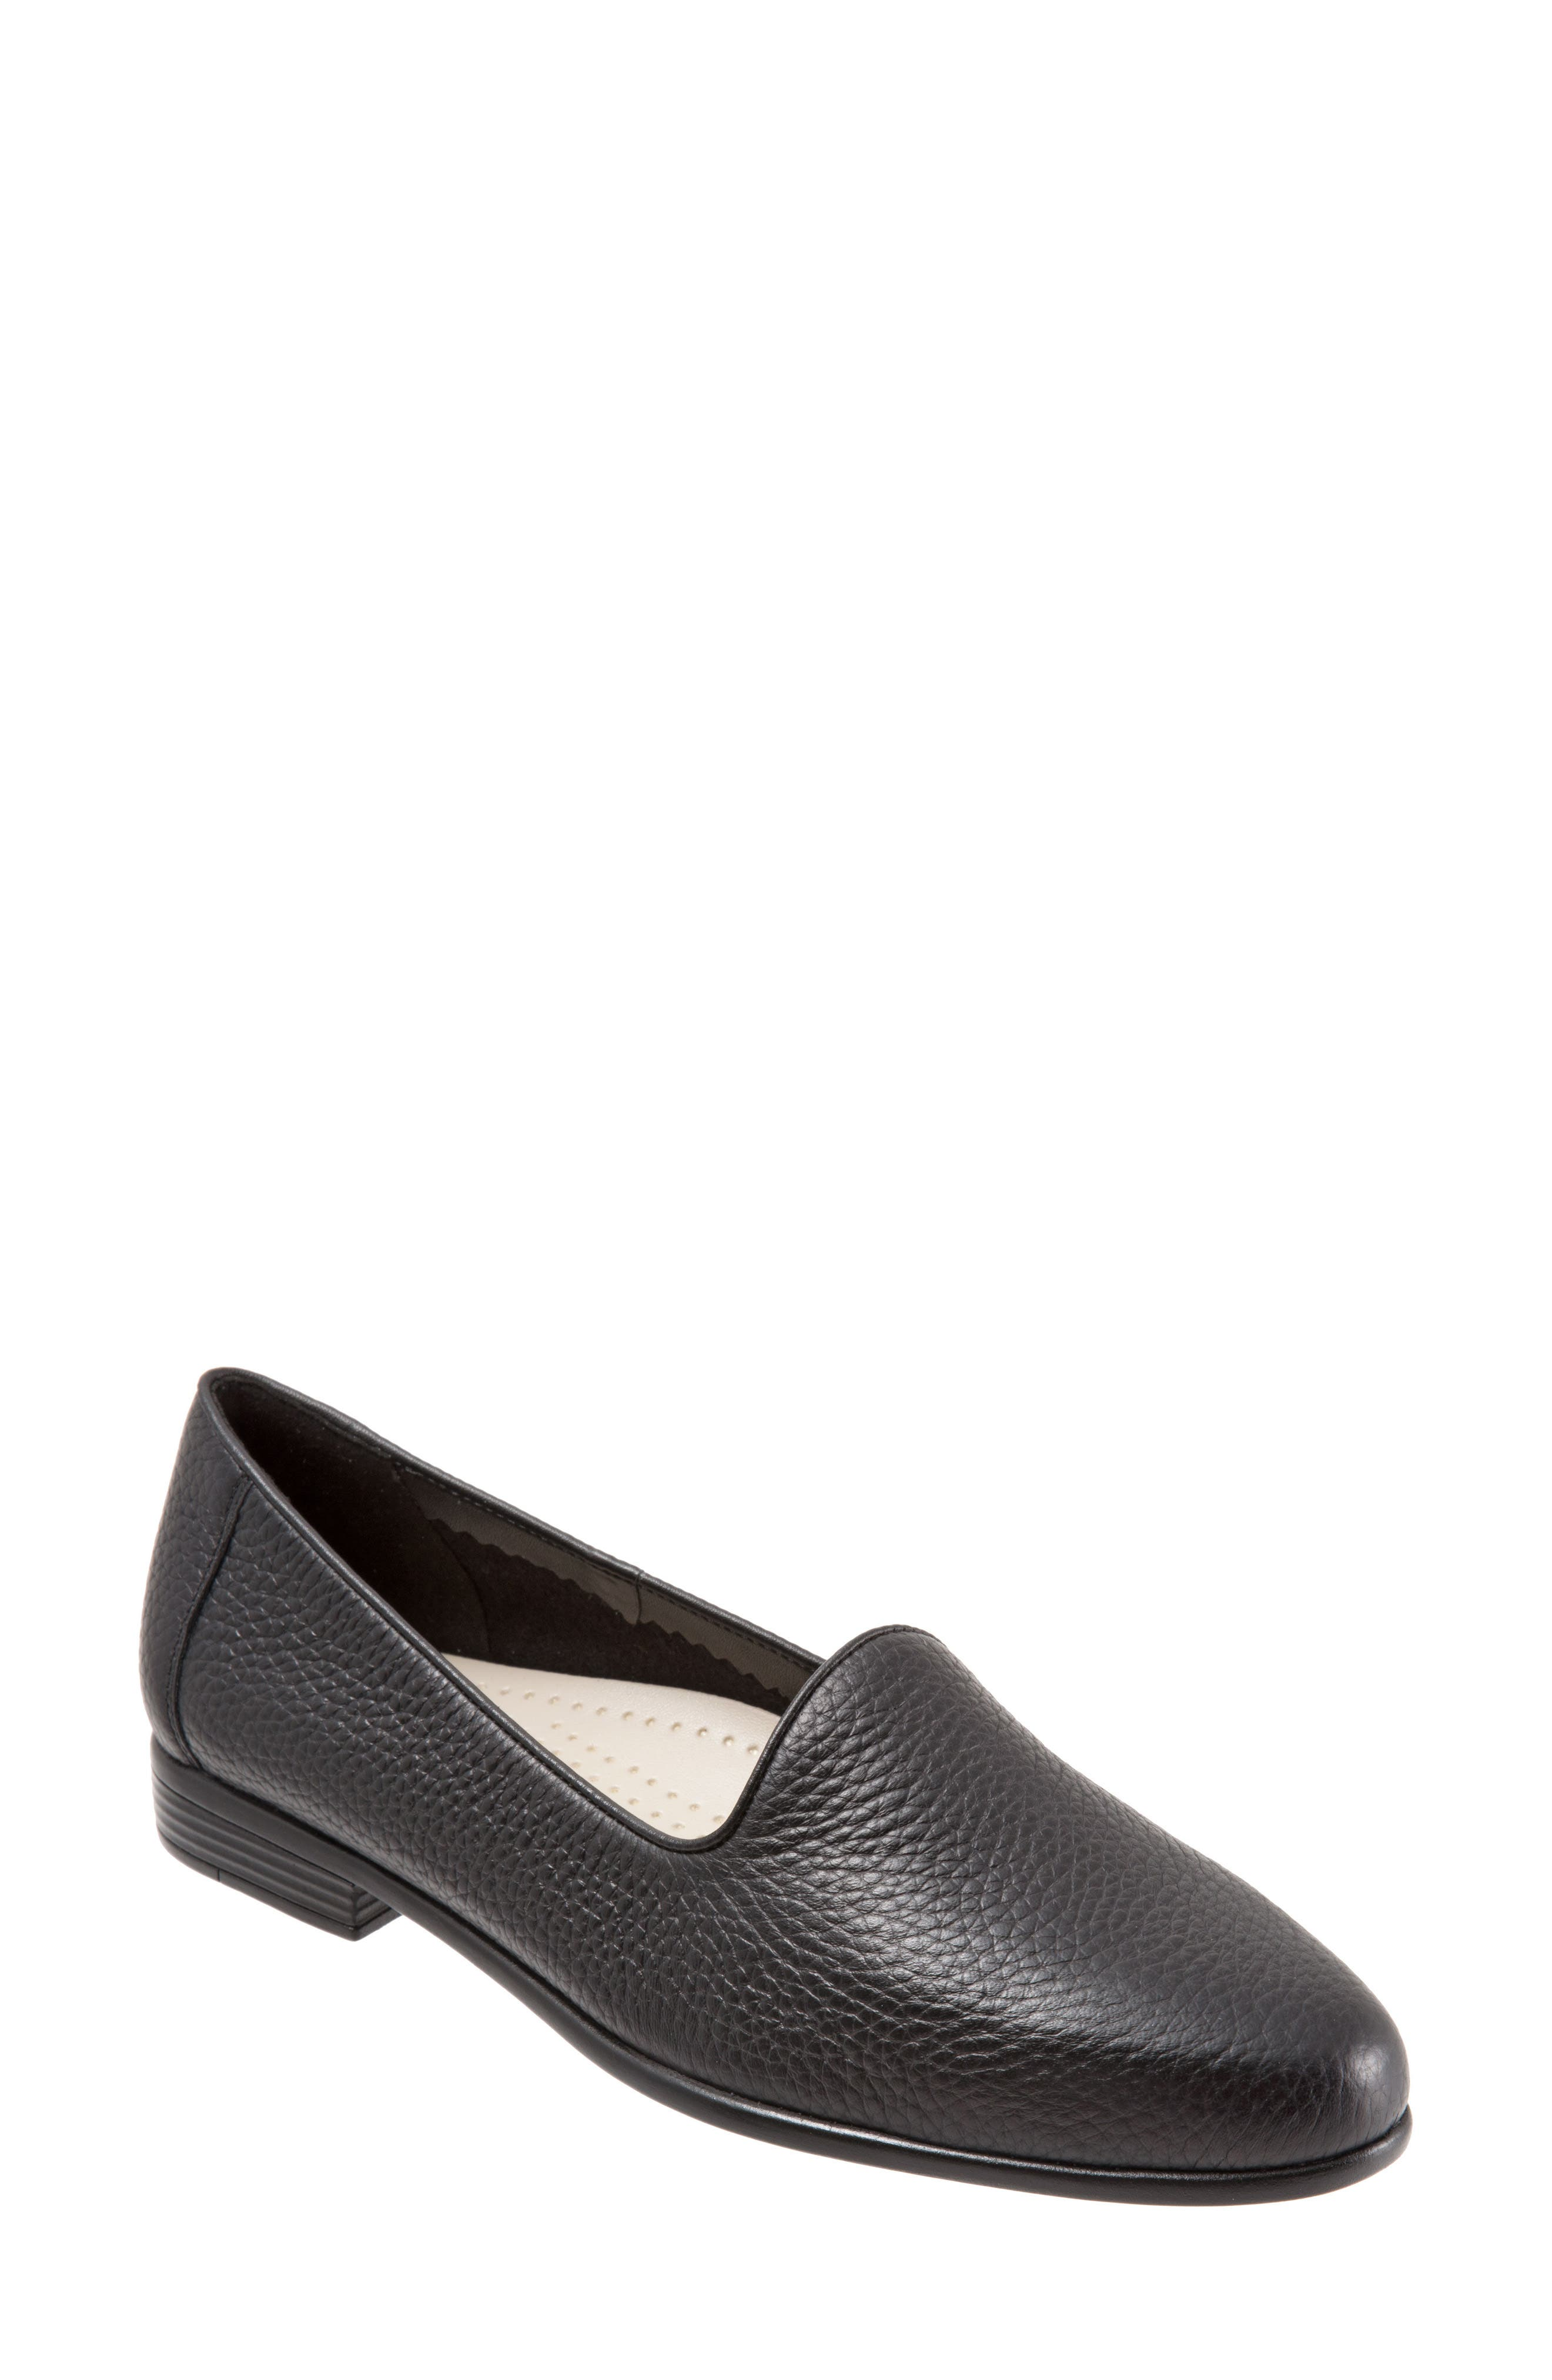 Liz Loafer,                             Main thumbnail 1, color,                             Black Leather